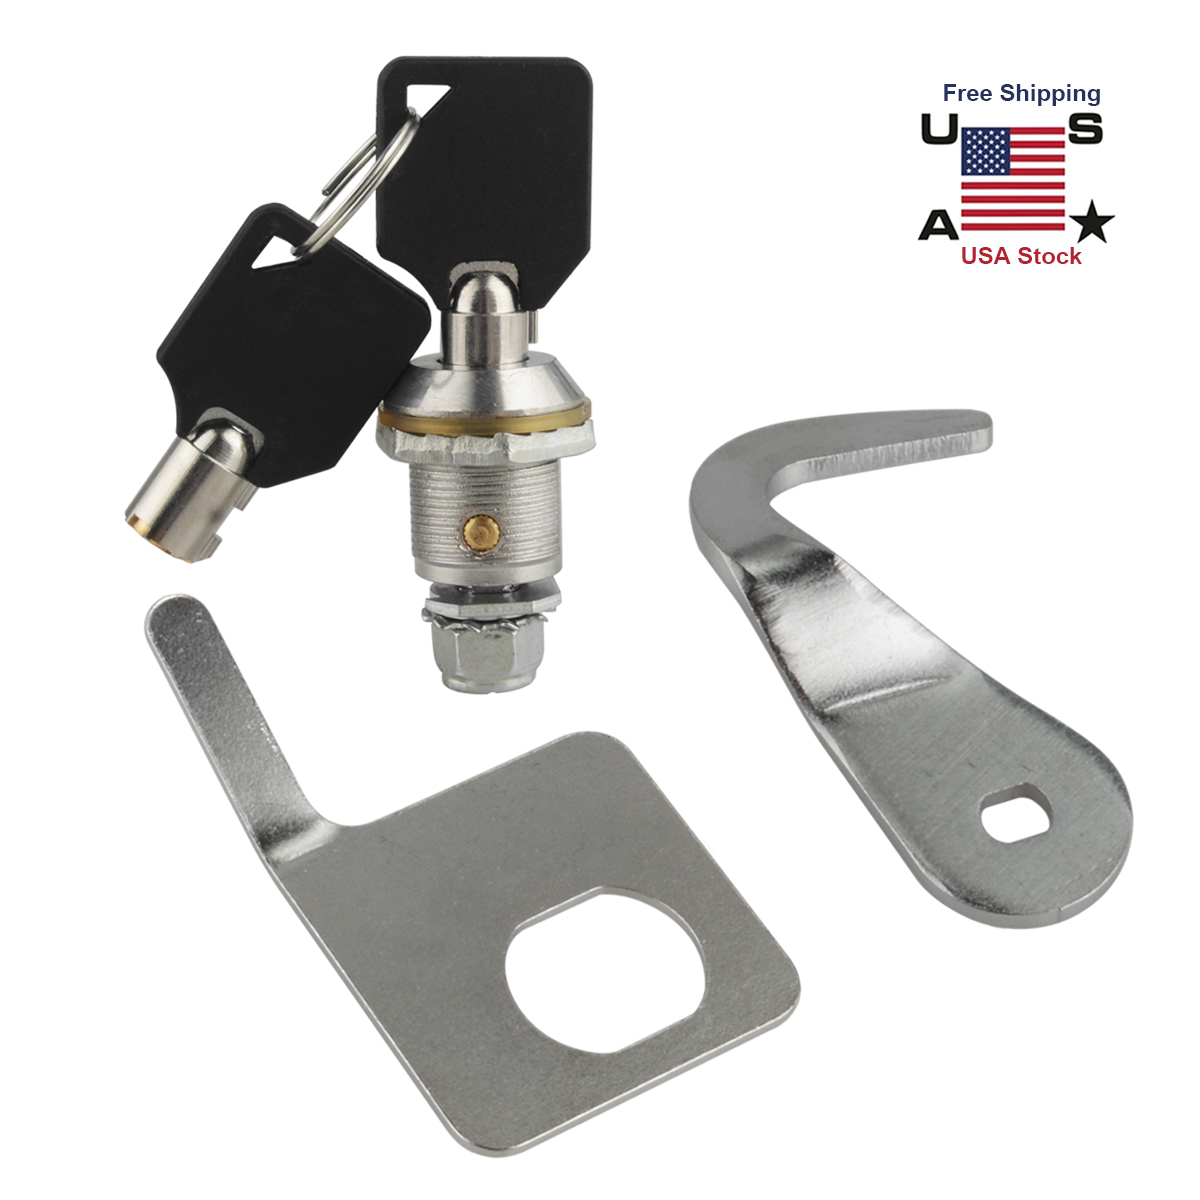 3c776ba28772 Details about Tour-Pak Pack Lock Key Kit For Harley 1993-2013 Touring  Davidson Replacement